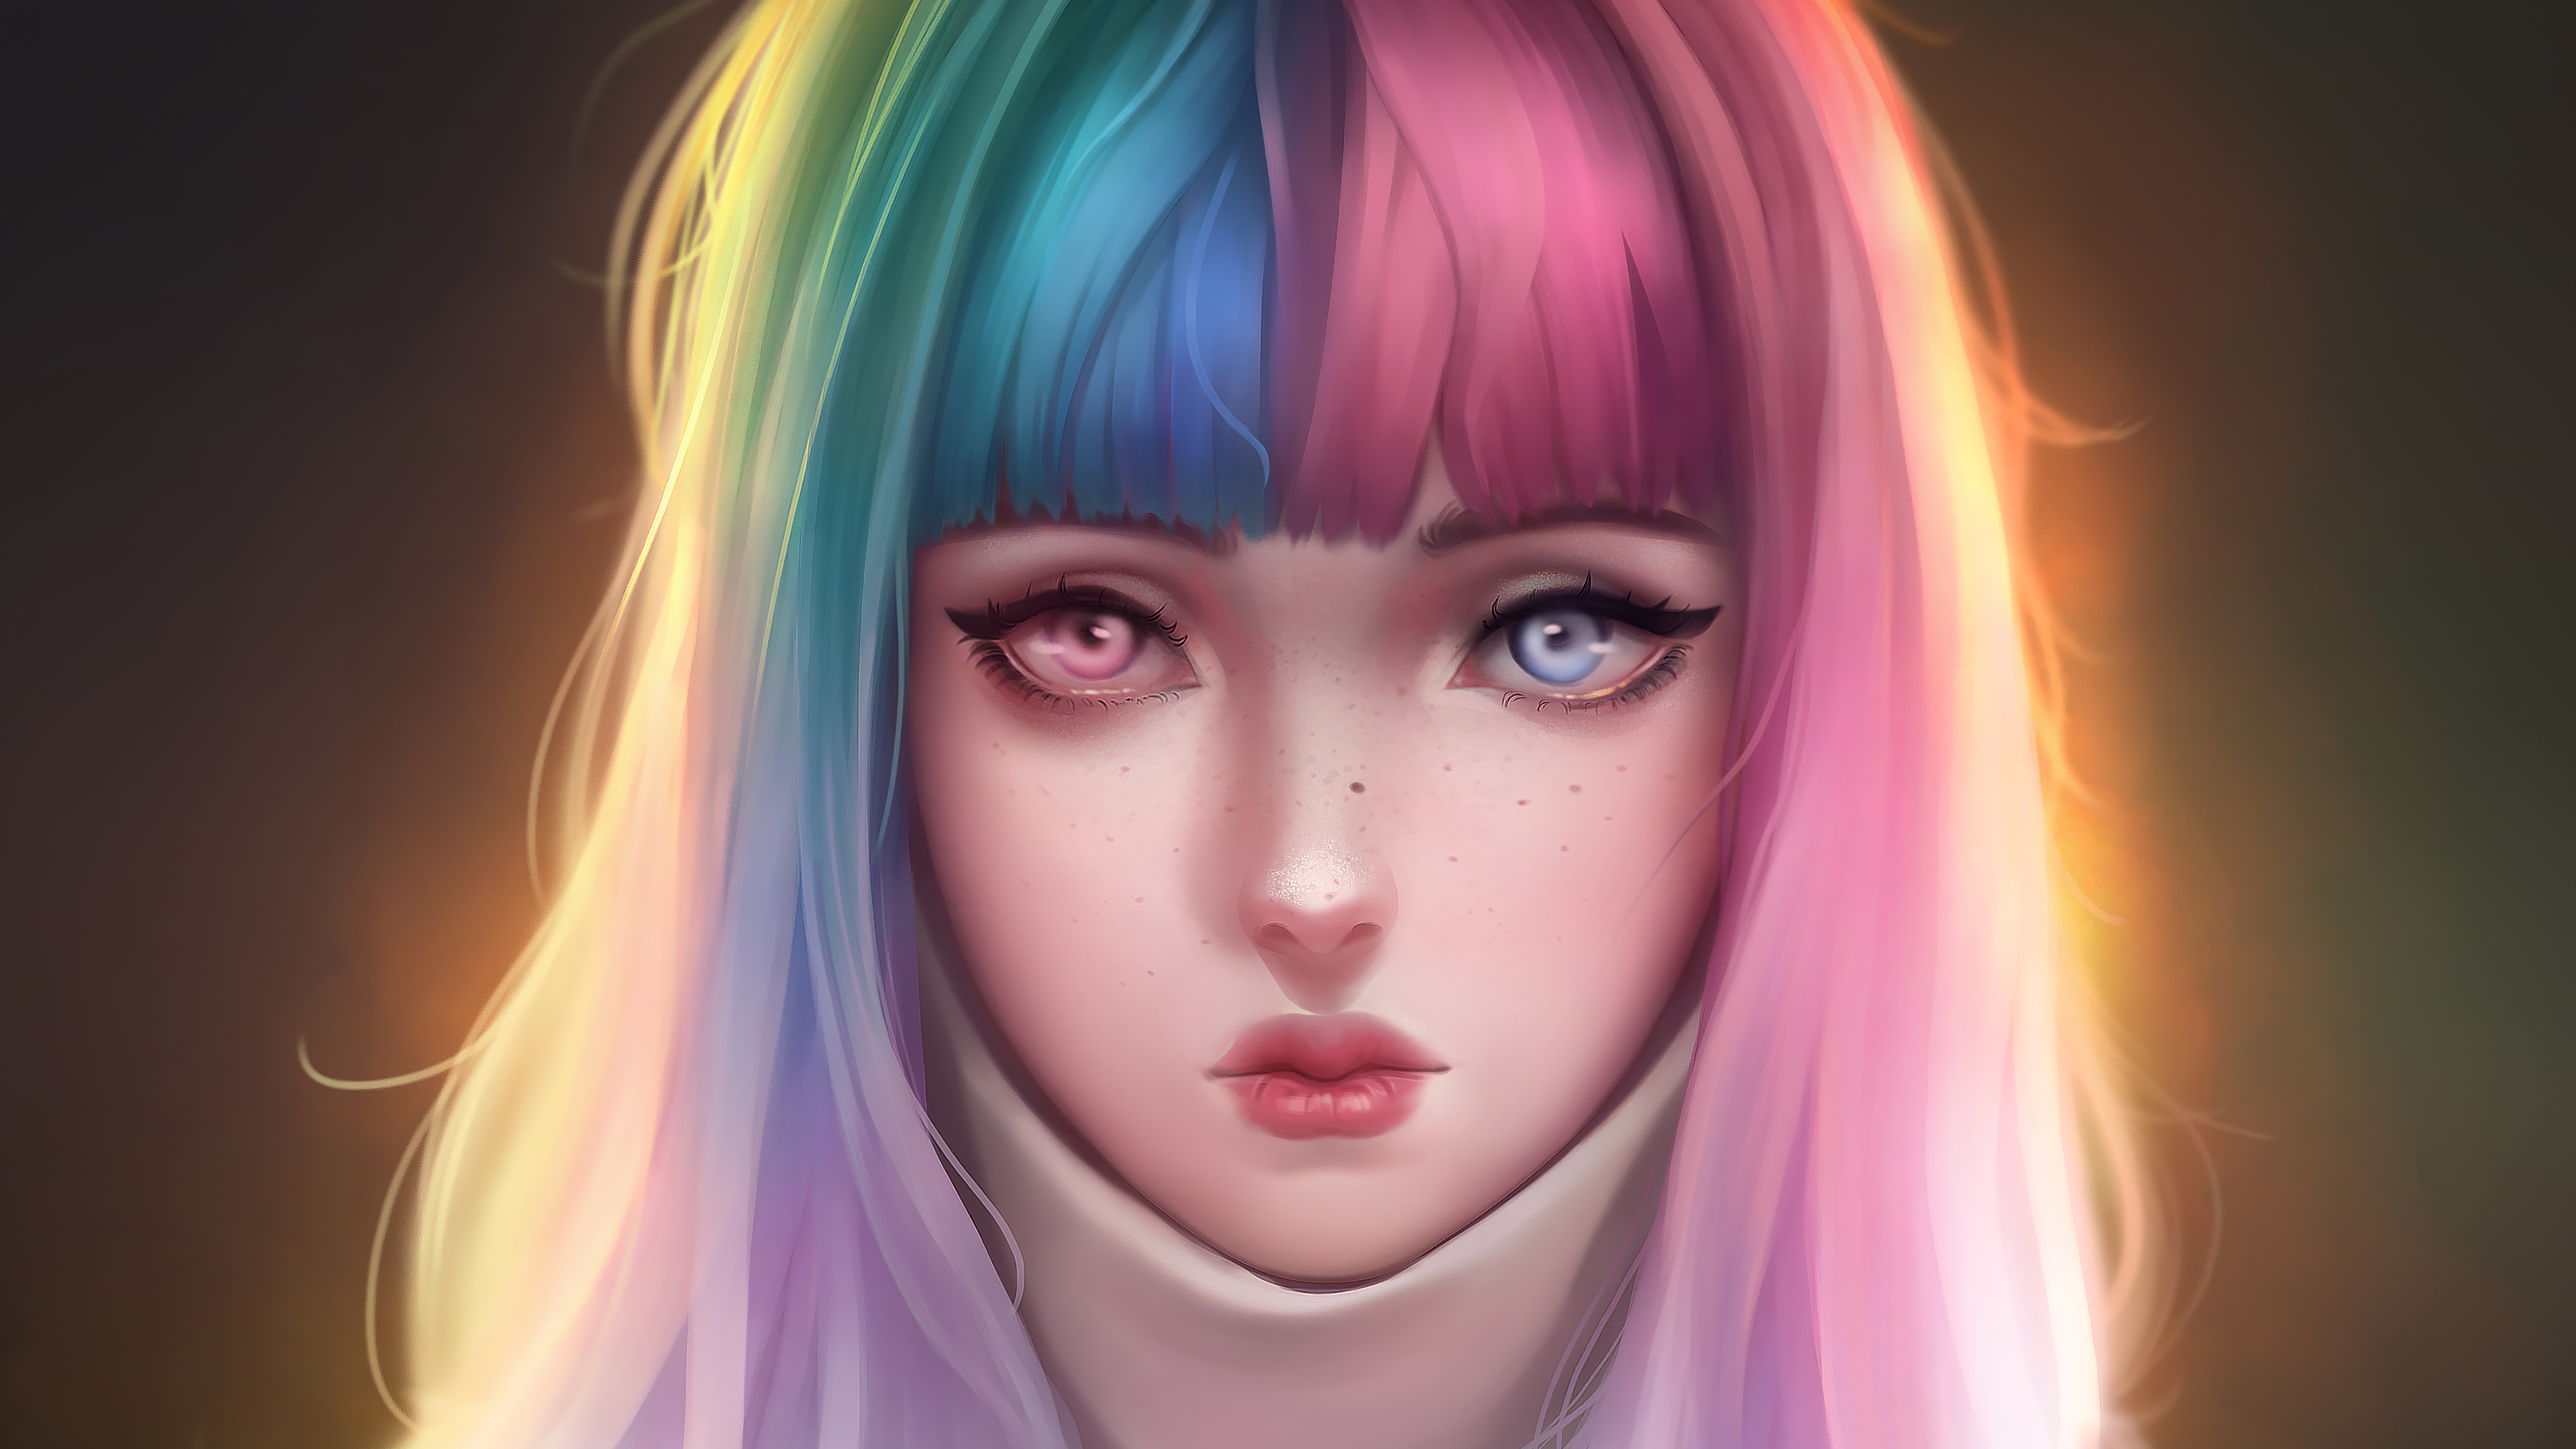 anime girl colorful hairs 1578254415 - Anime Girl Colorful Hairs -